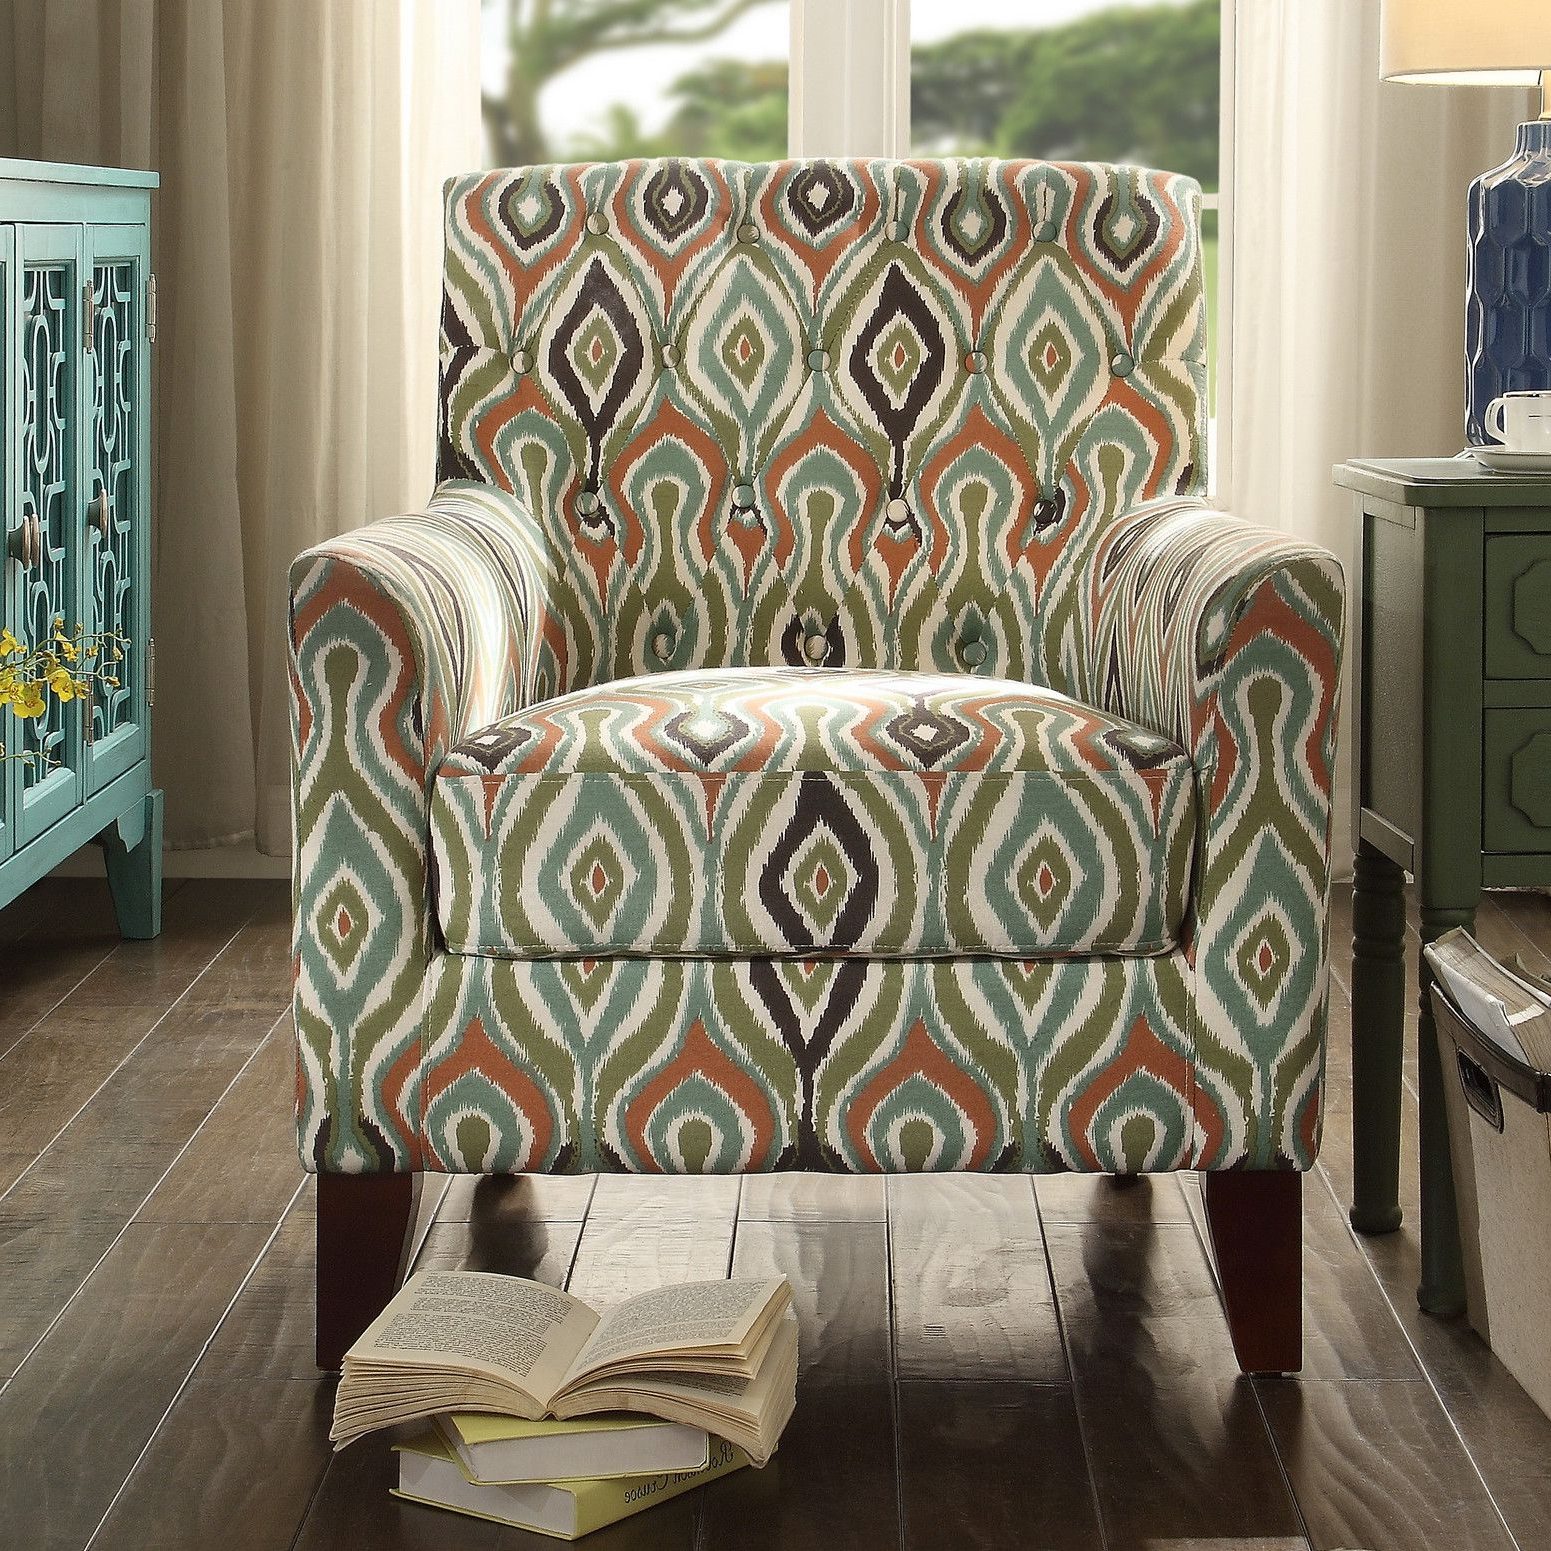 Tufted Arm Chair, Tufted Club Chairs, Armchair (View 3 of 20)